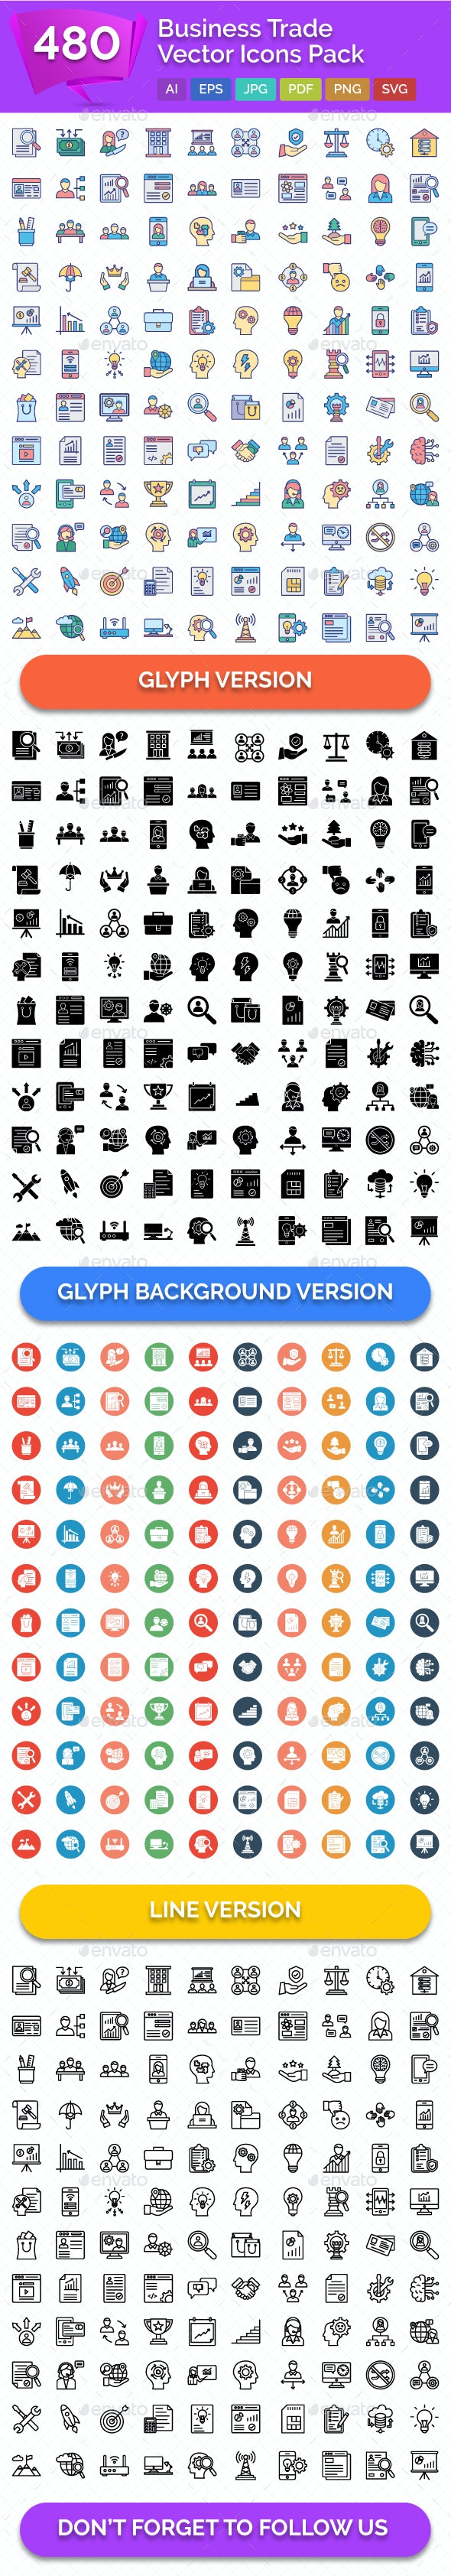 480 Business Trade Vector Icons Pack - Icons